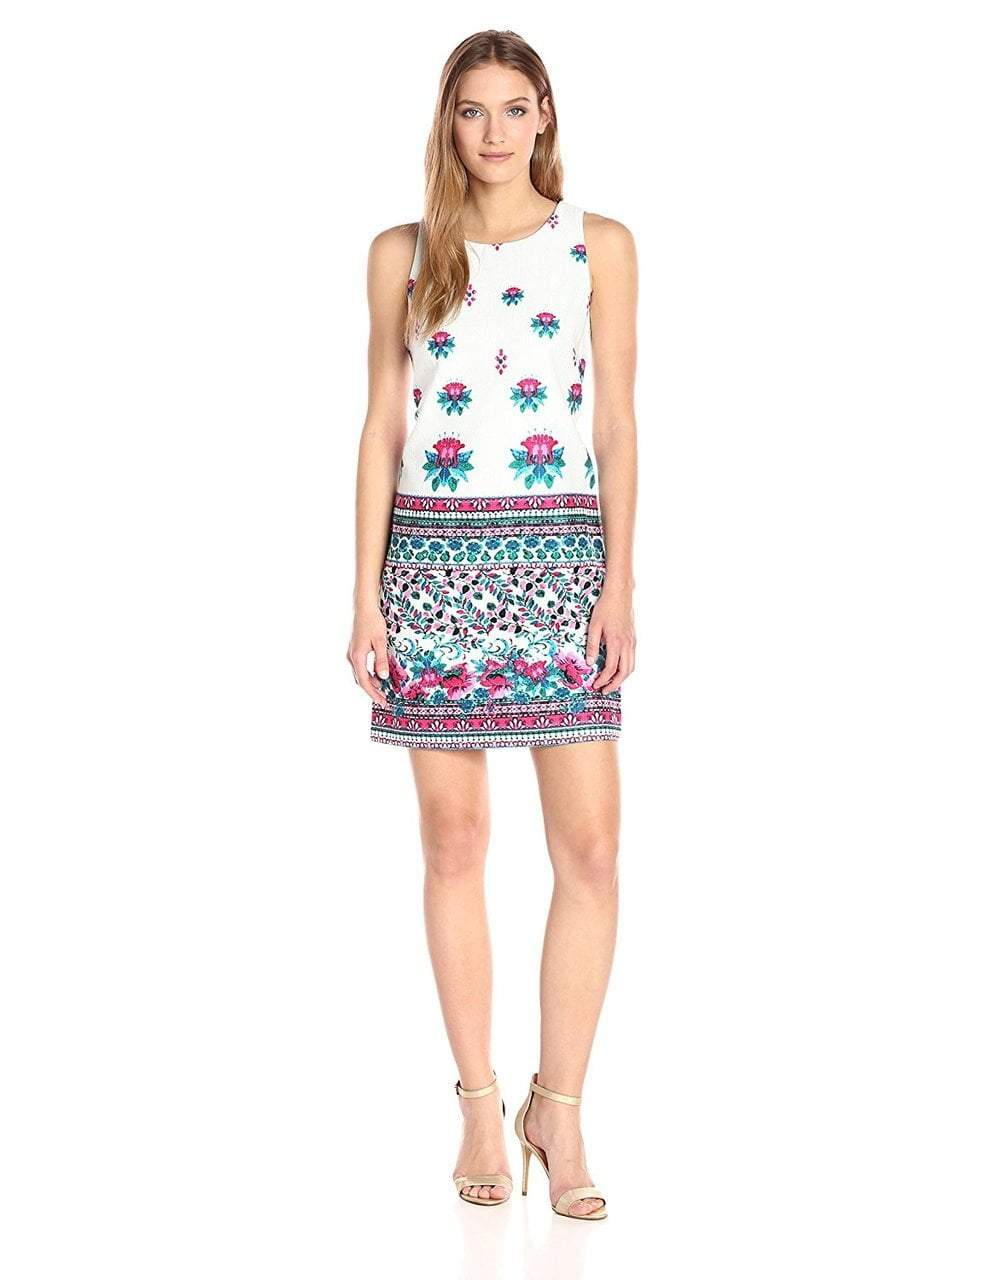 Taylor - Printed Jewel Neck Sheath Dress 8834M in Multi-Color